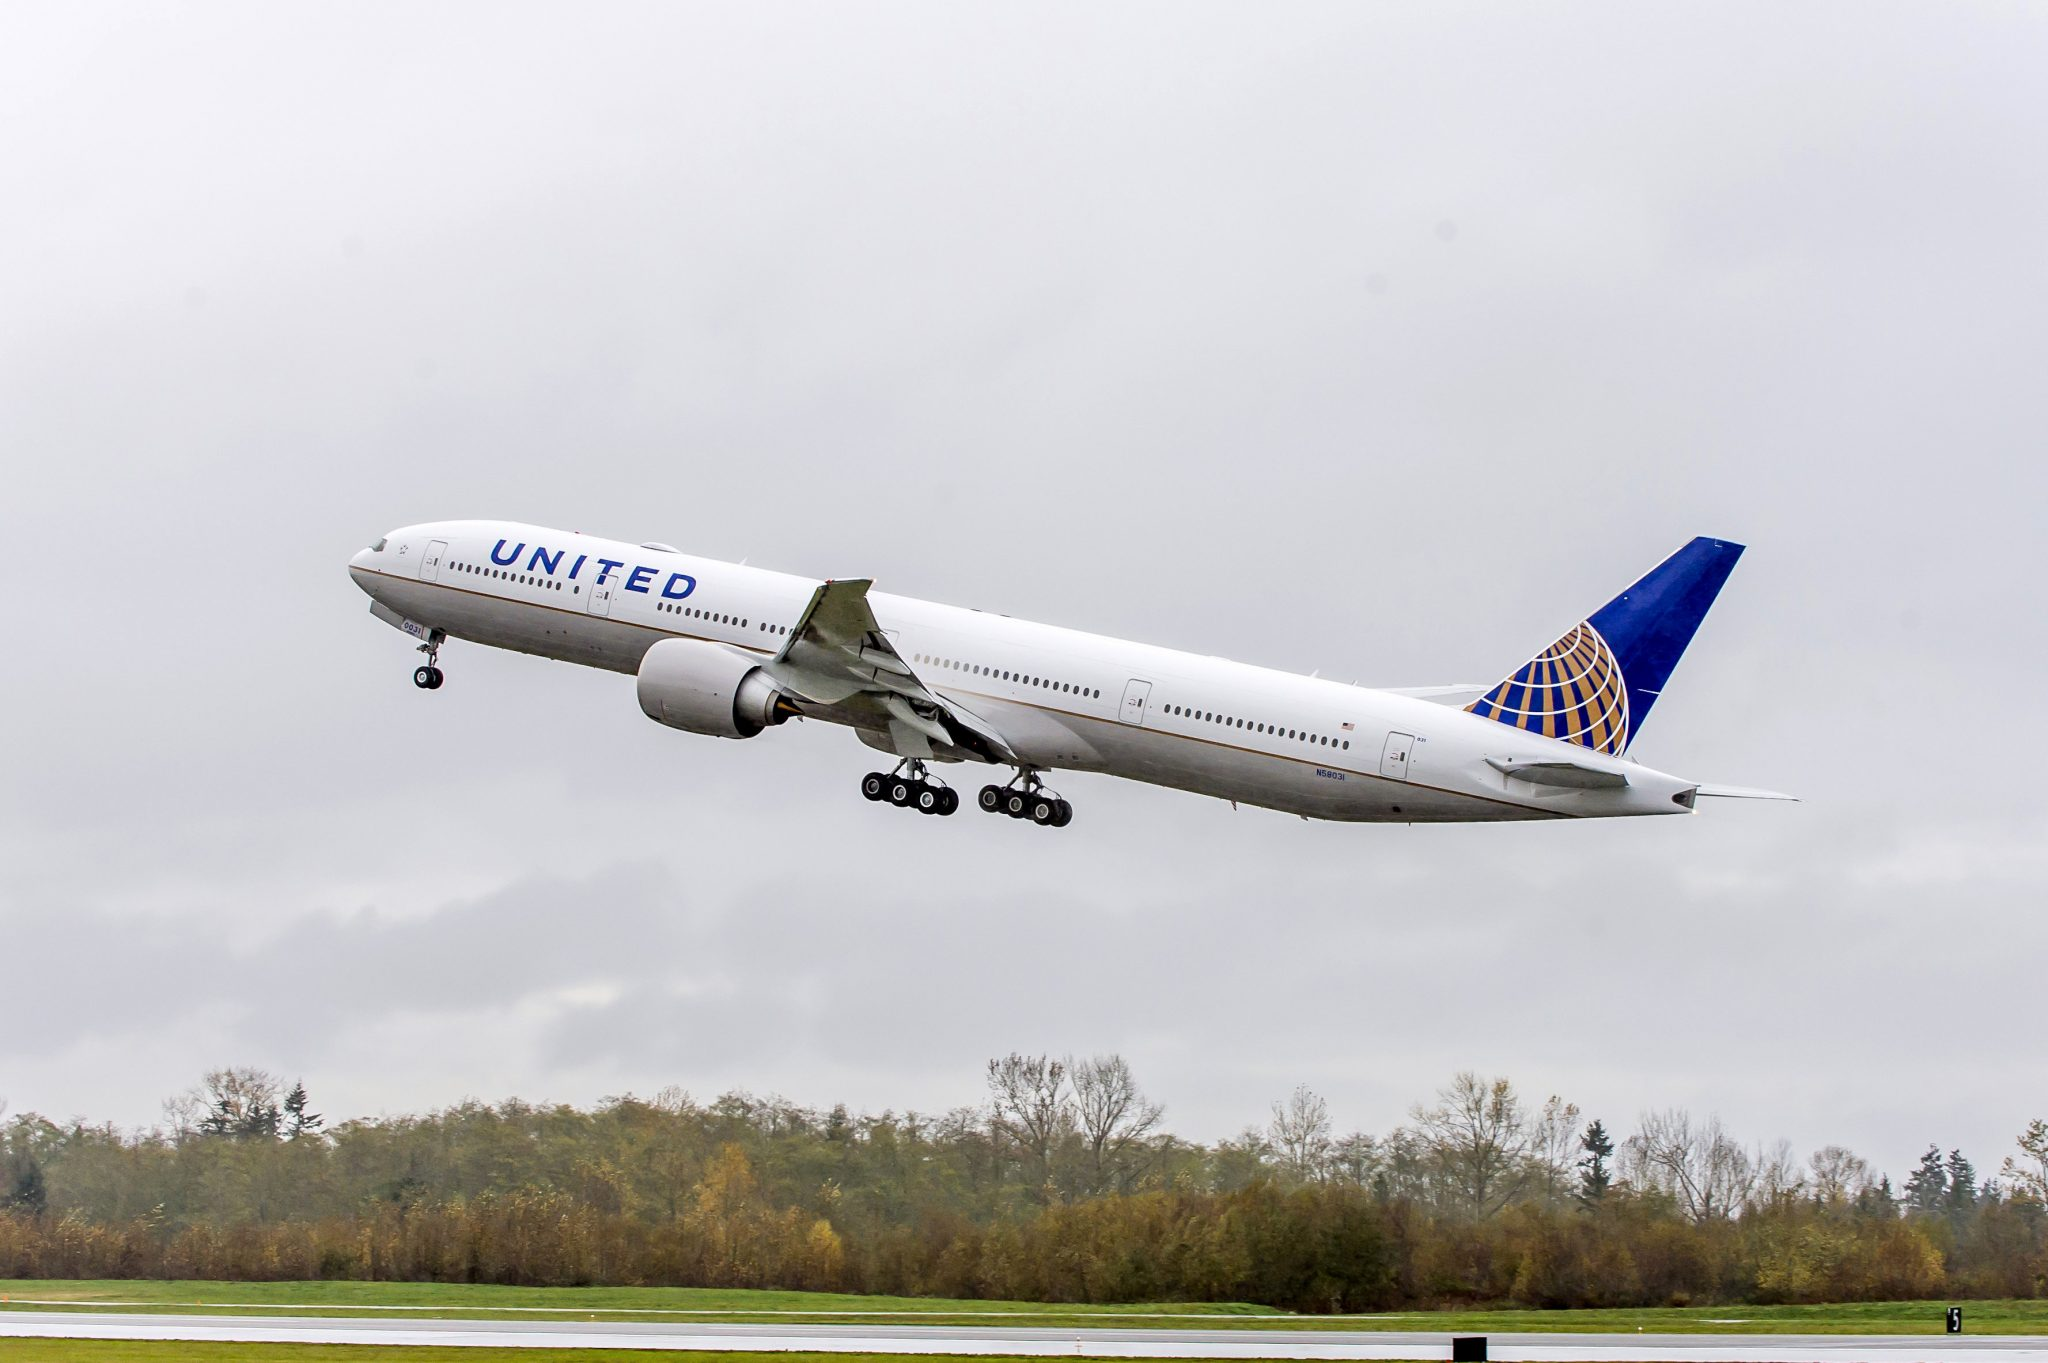 United doubles 1Q profit on cost management, pre-tax margin growth